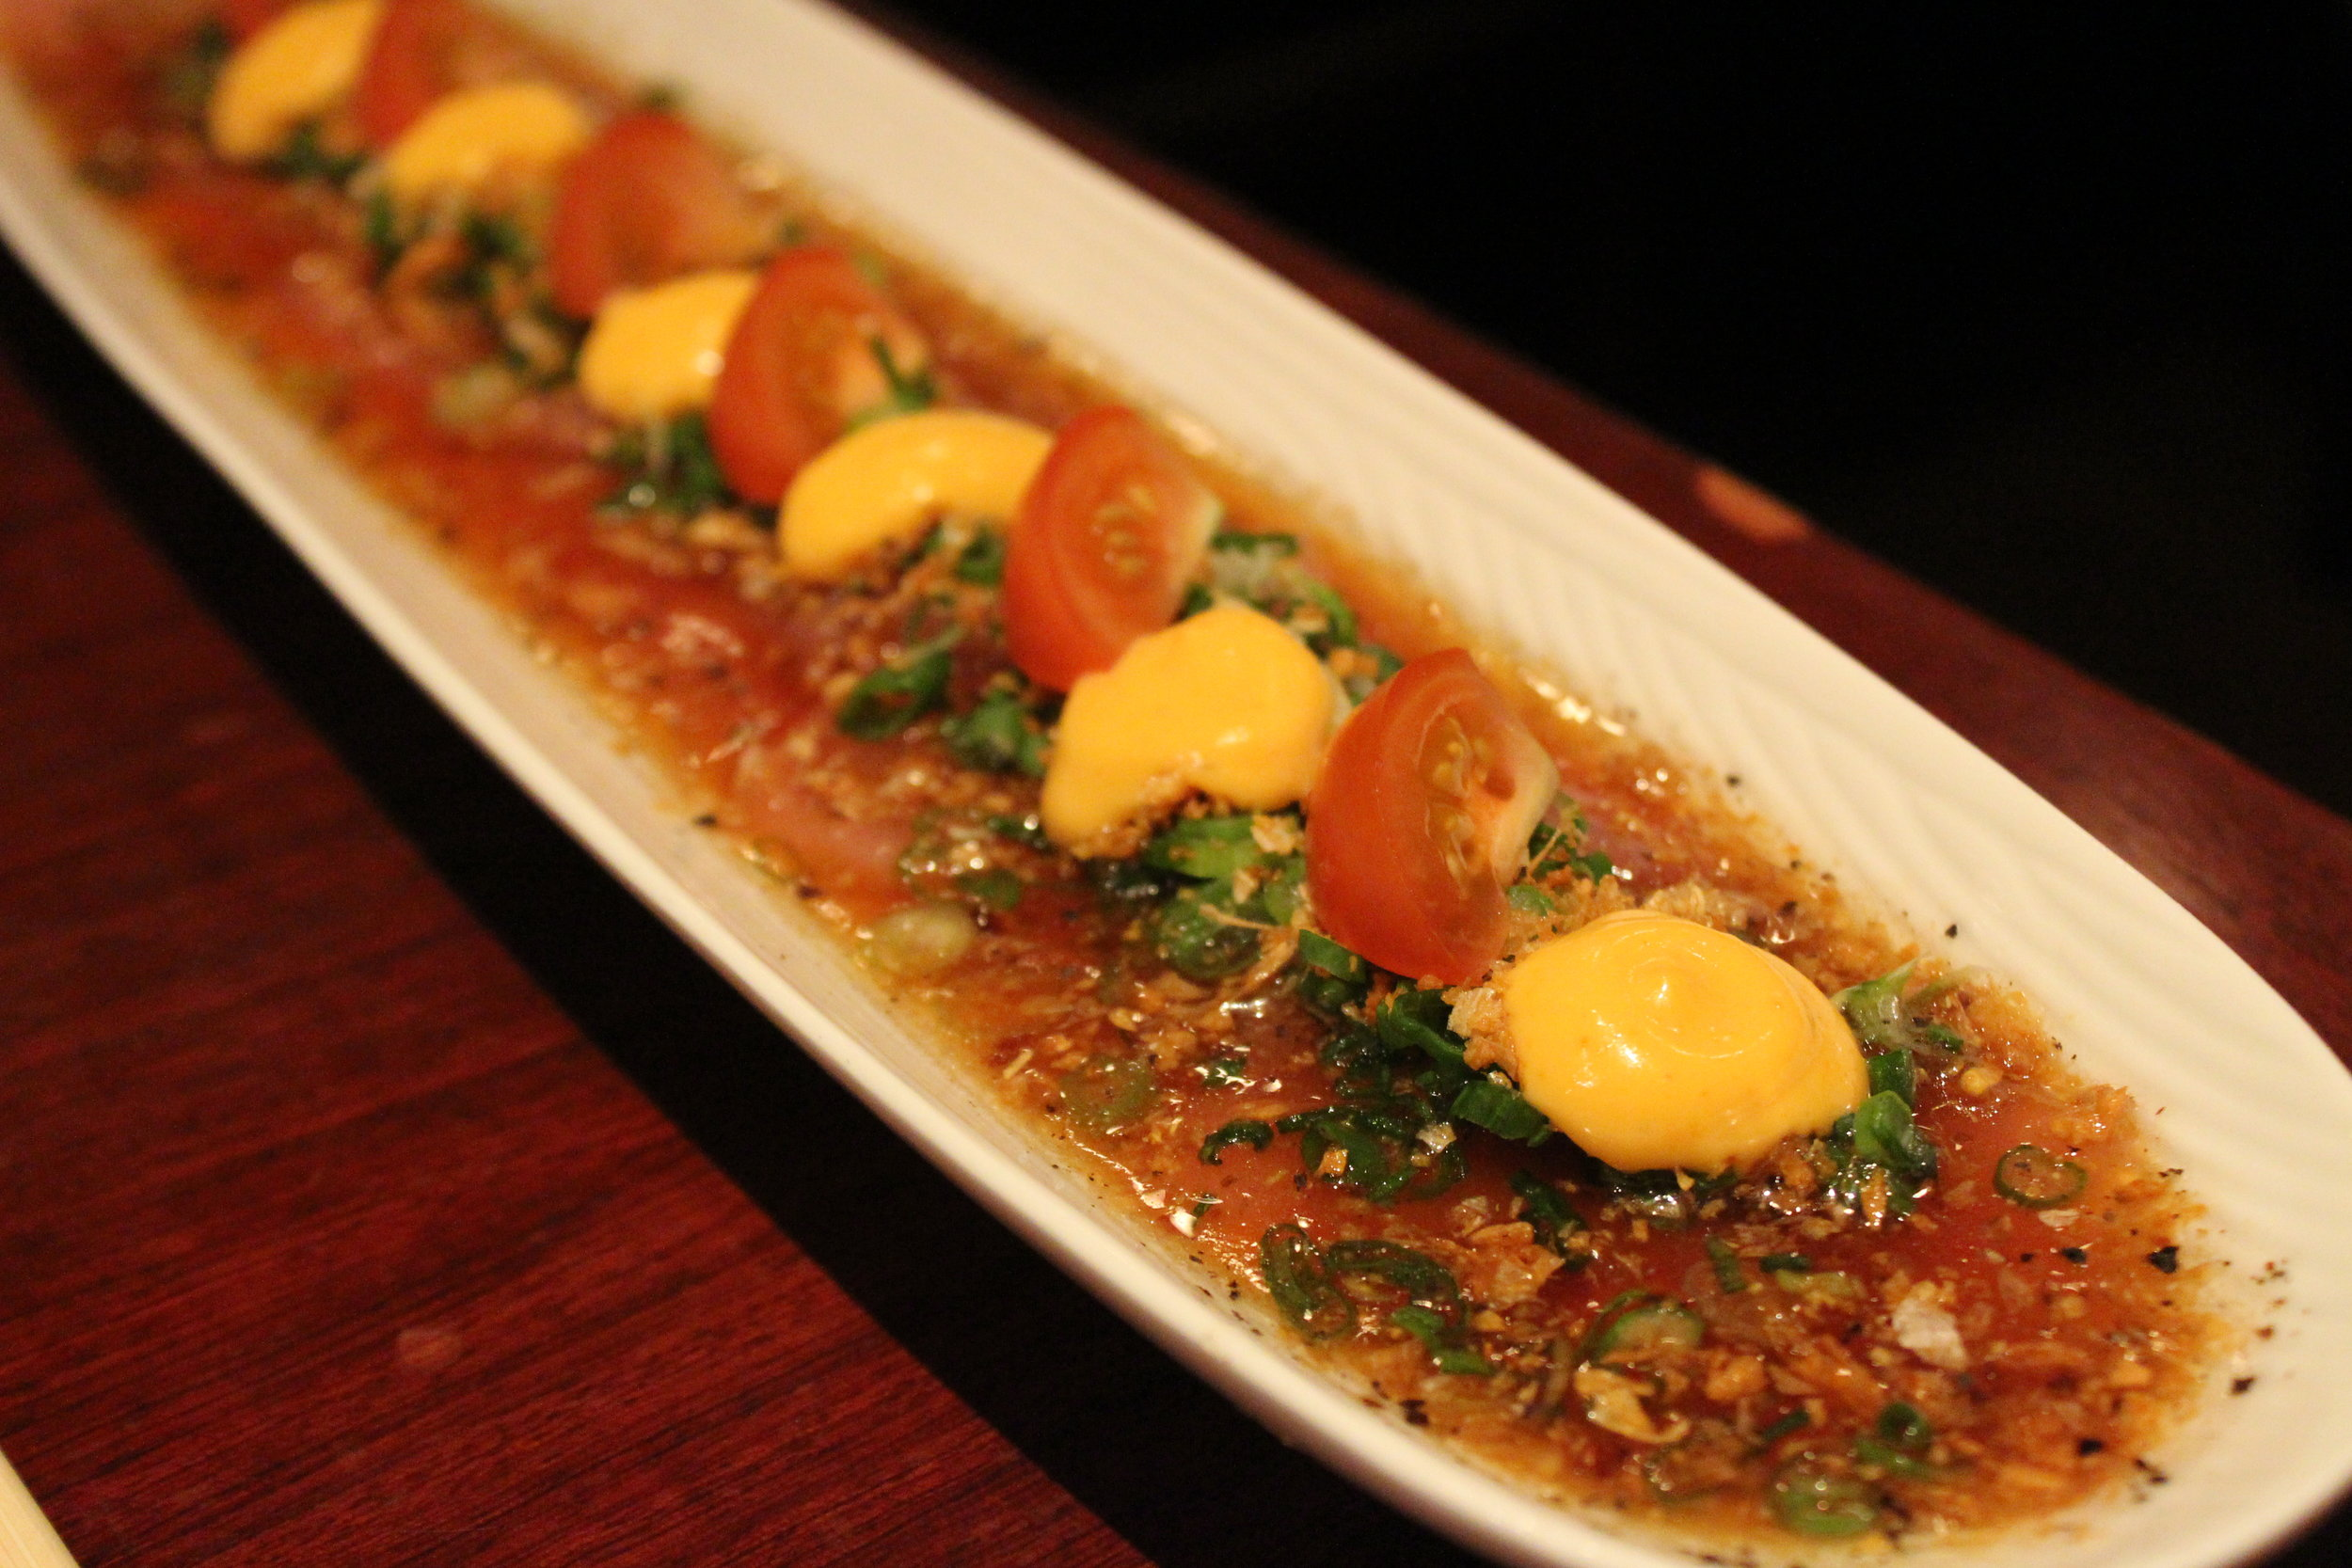 Spicy Tuna Carpaccio with Scallions, Fried Garlic Chips, and Spicy Mayonnaise